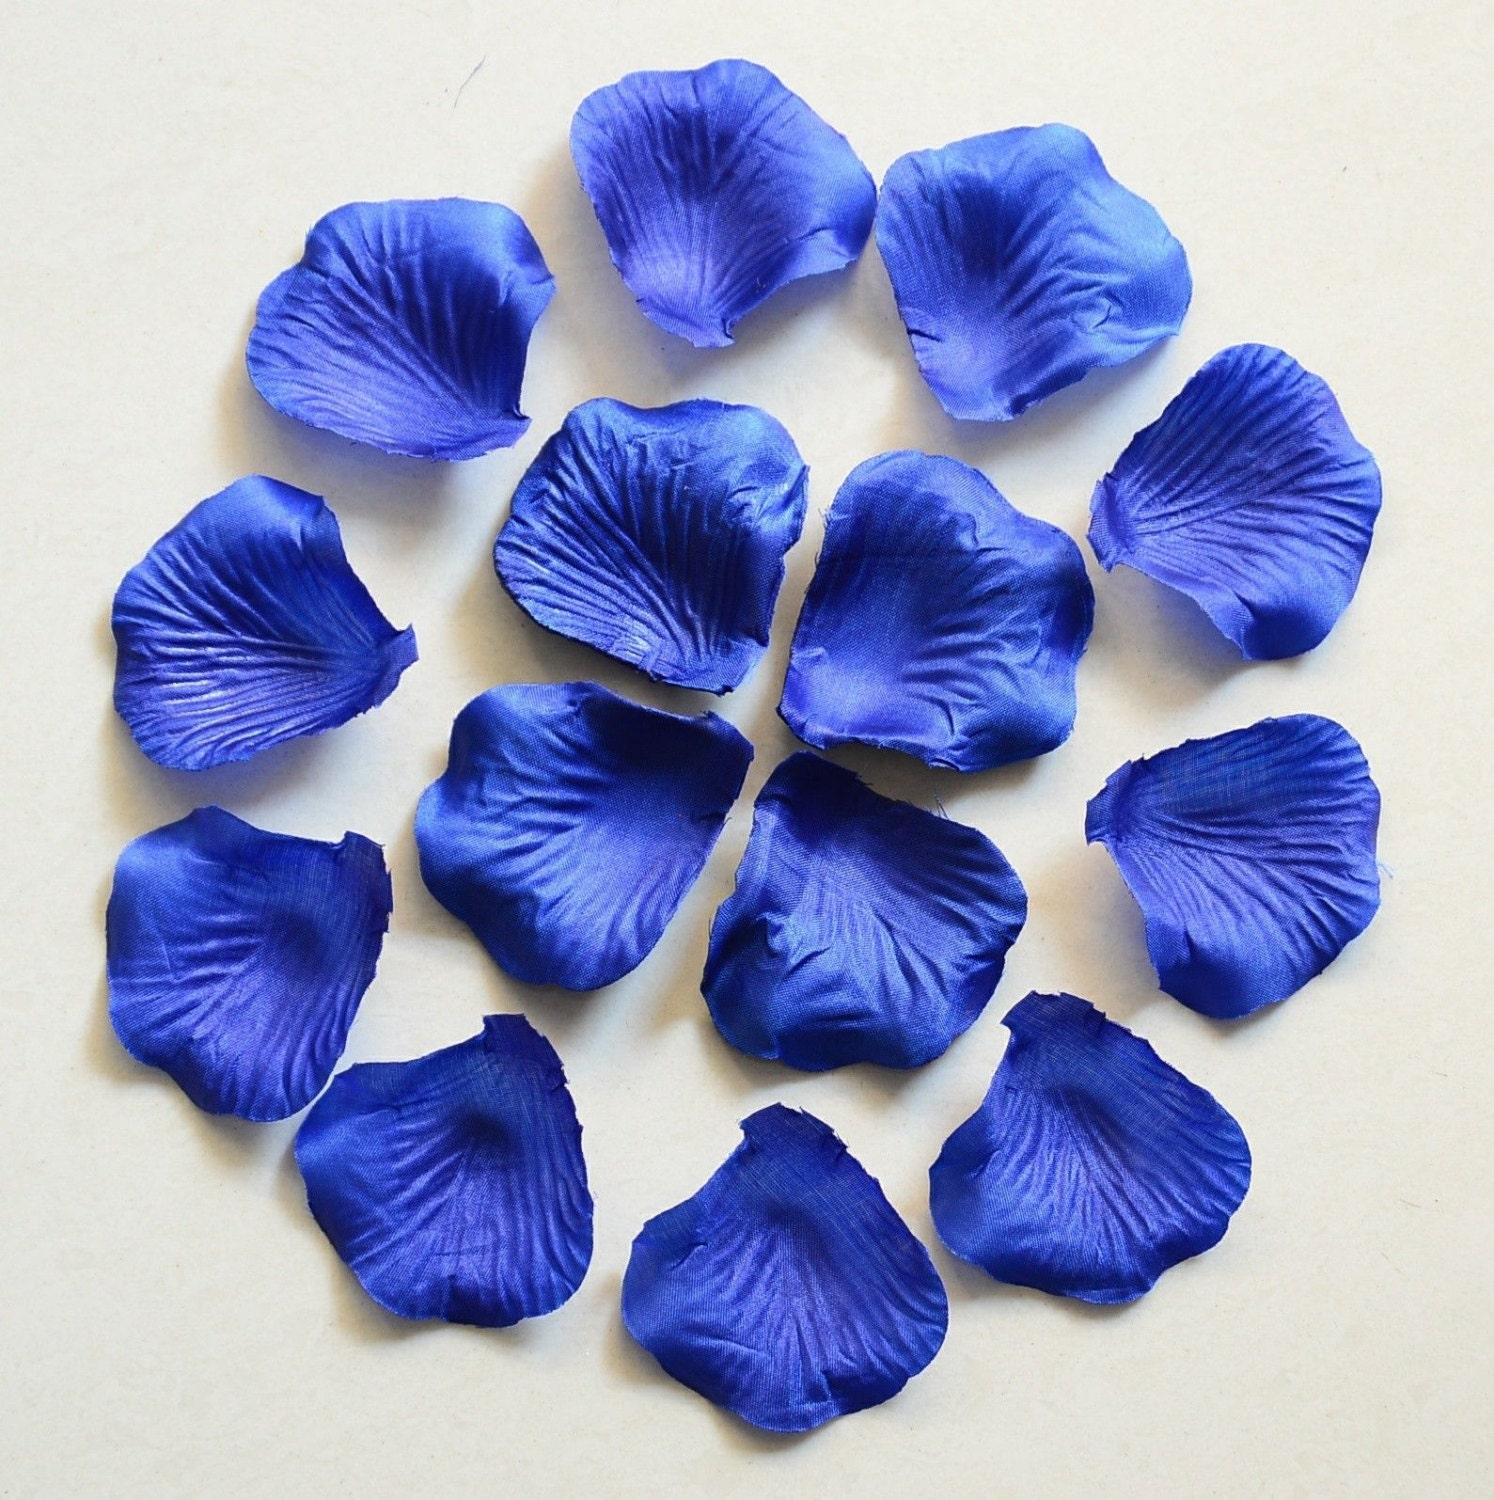 1000 pcs royal blue rose petals bulk silk rose petals fake